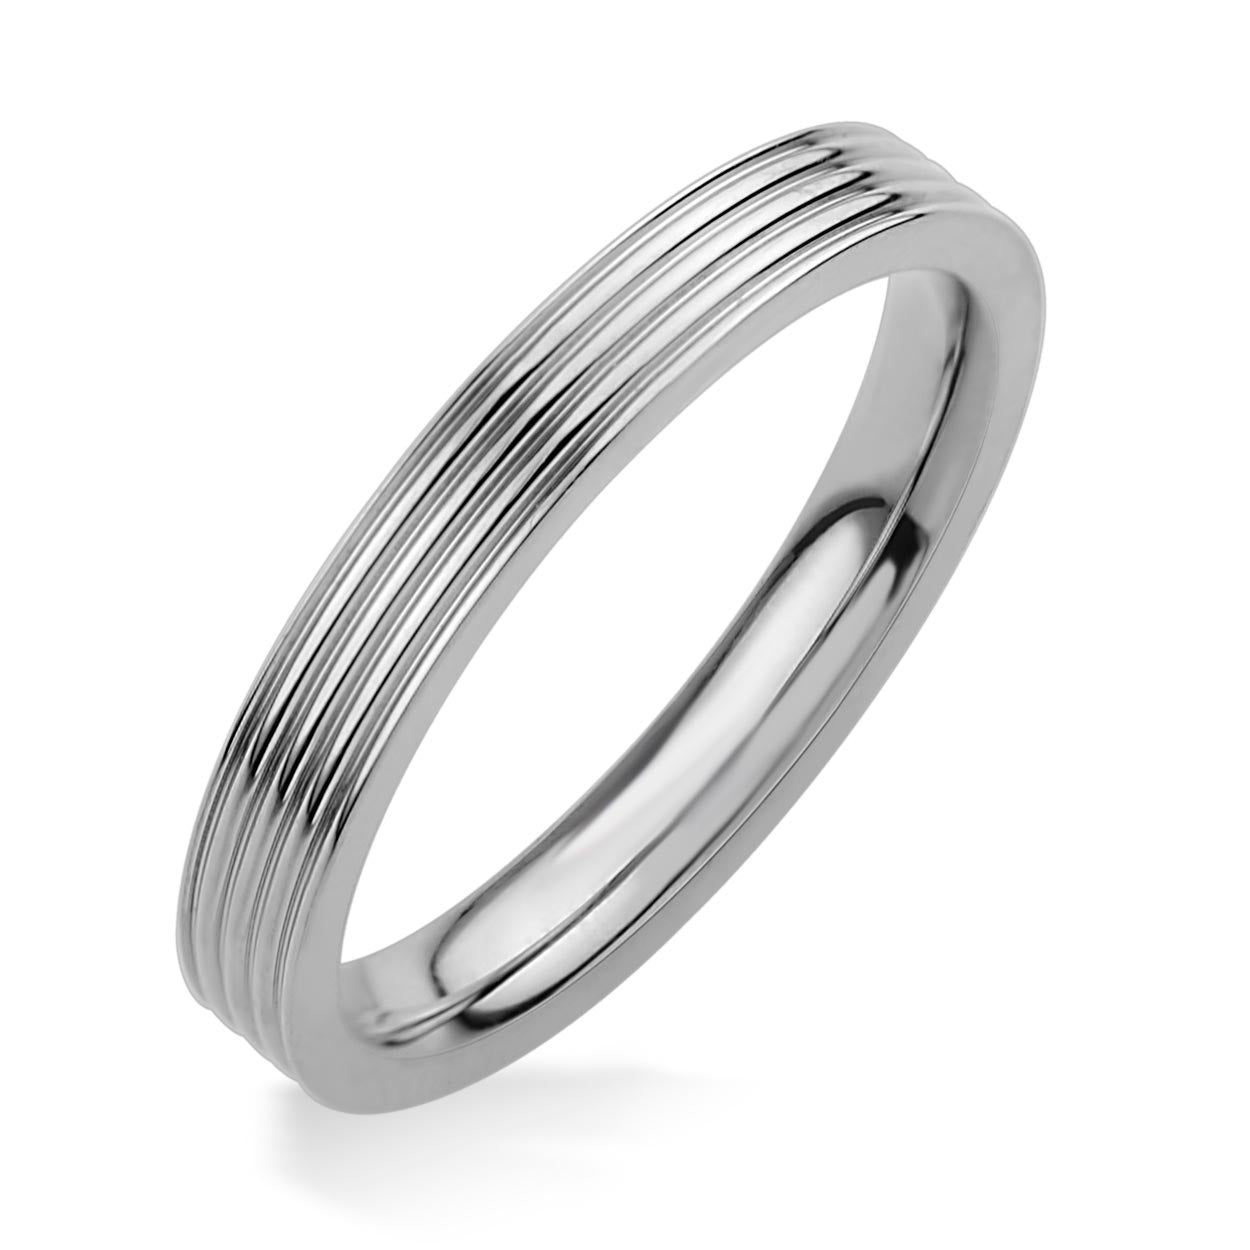 MNC-R738-A Stainless Steel Grooved Ring